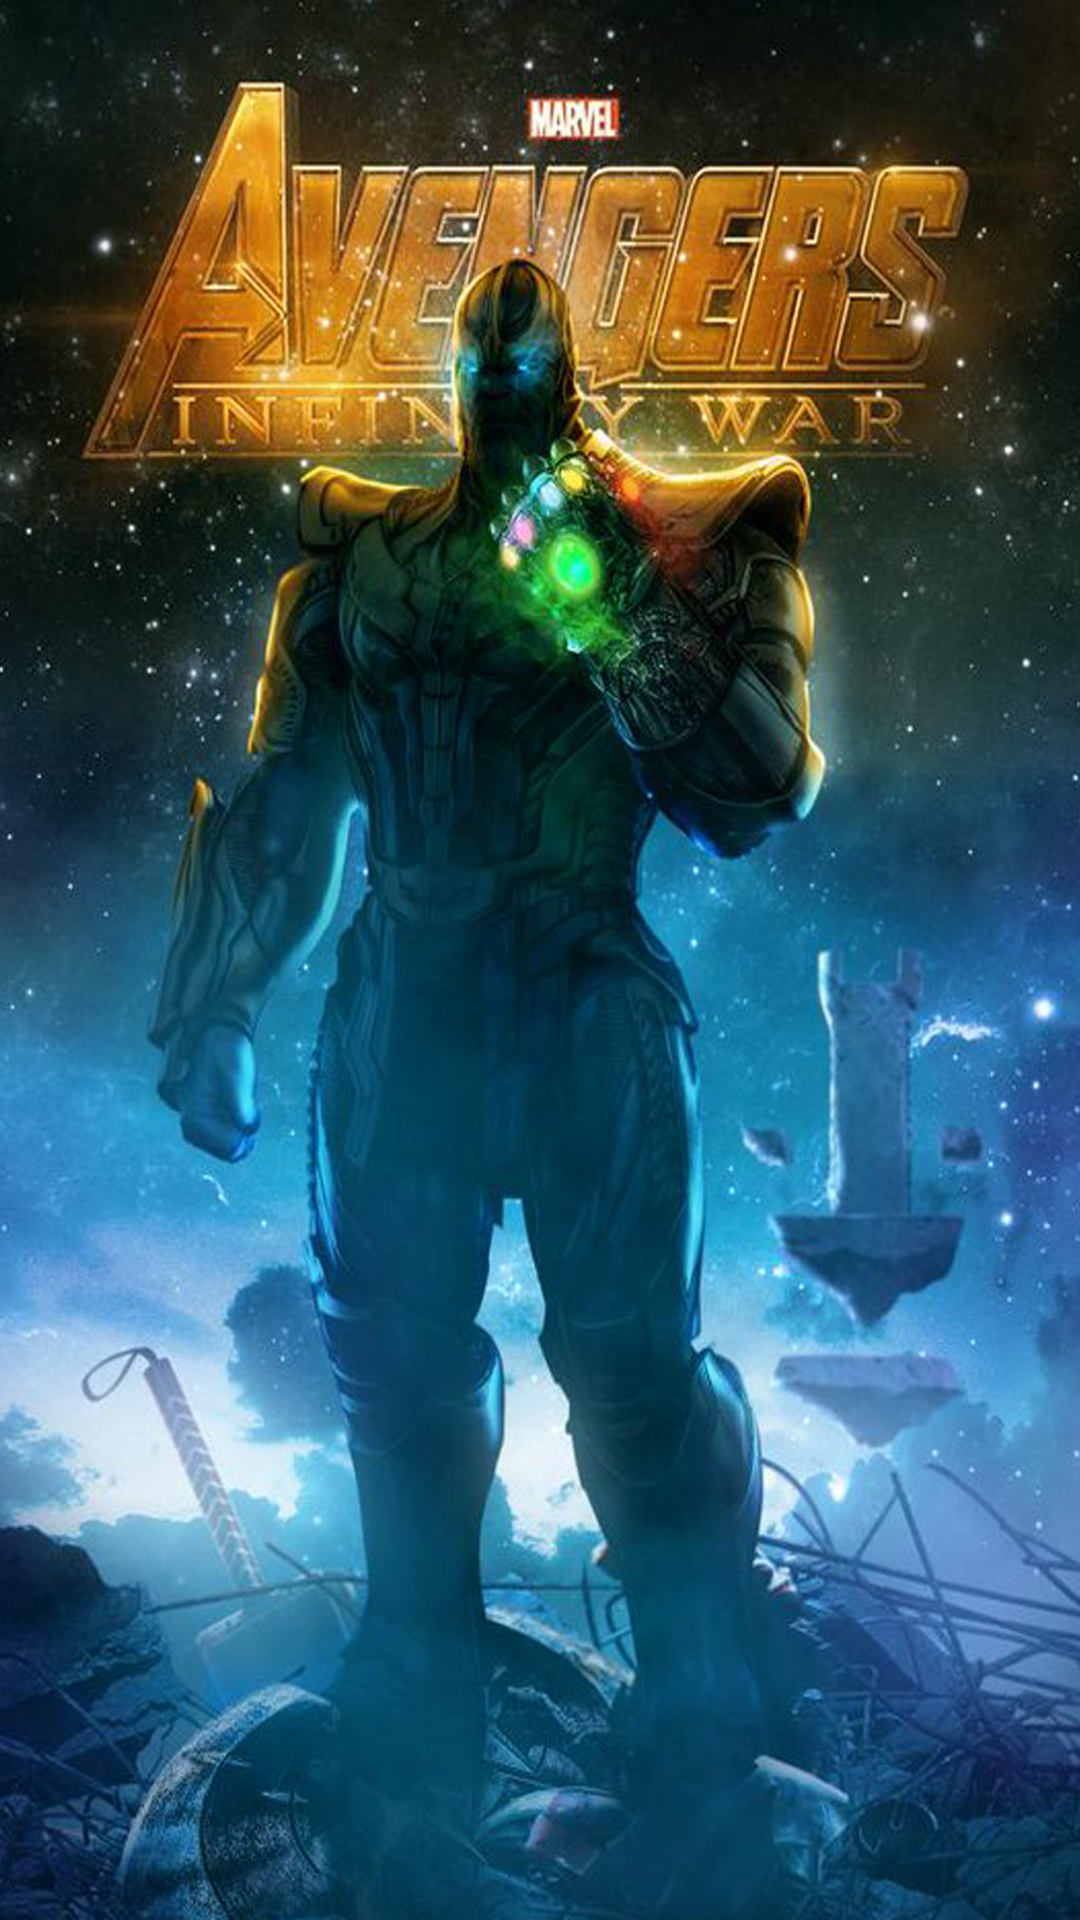 iPhone wallpaper avengers infinity war thanos